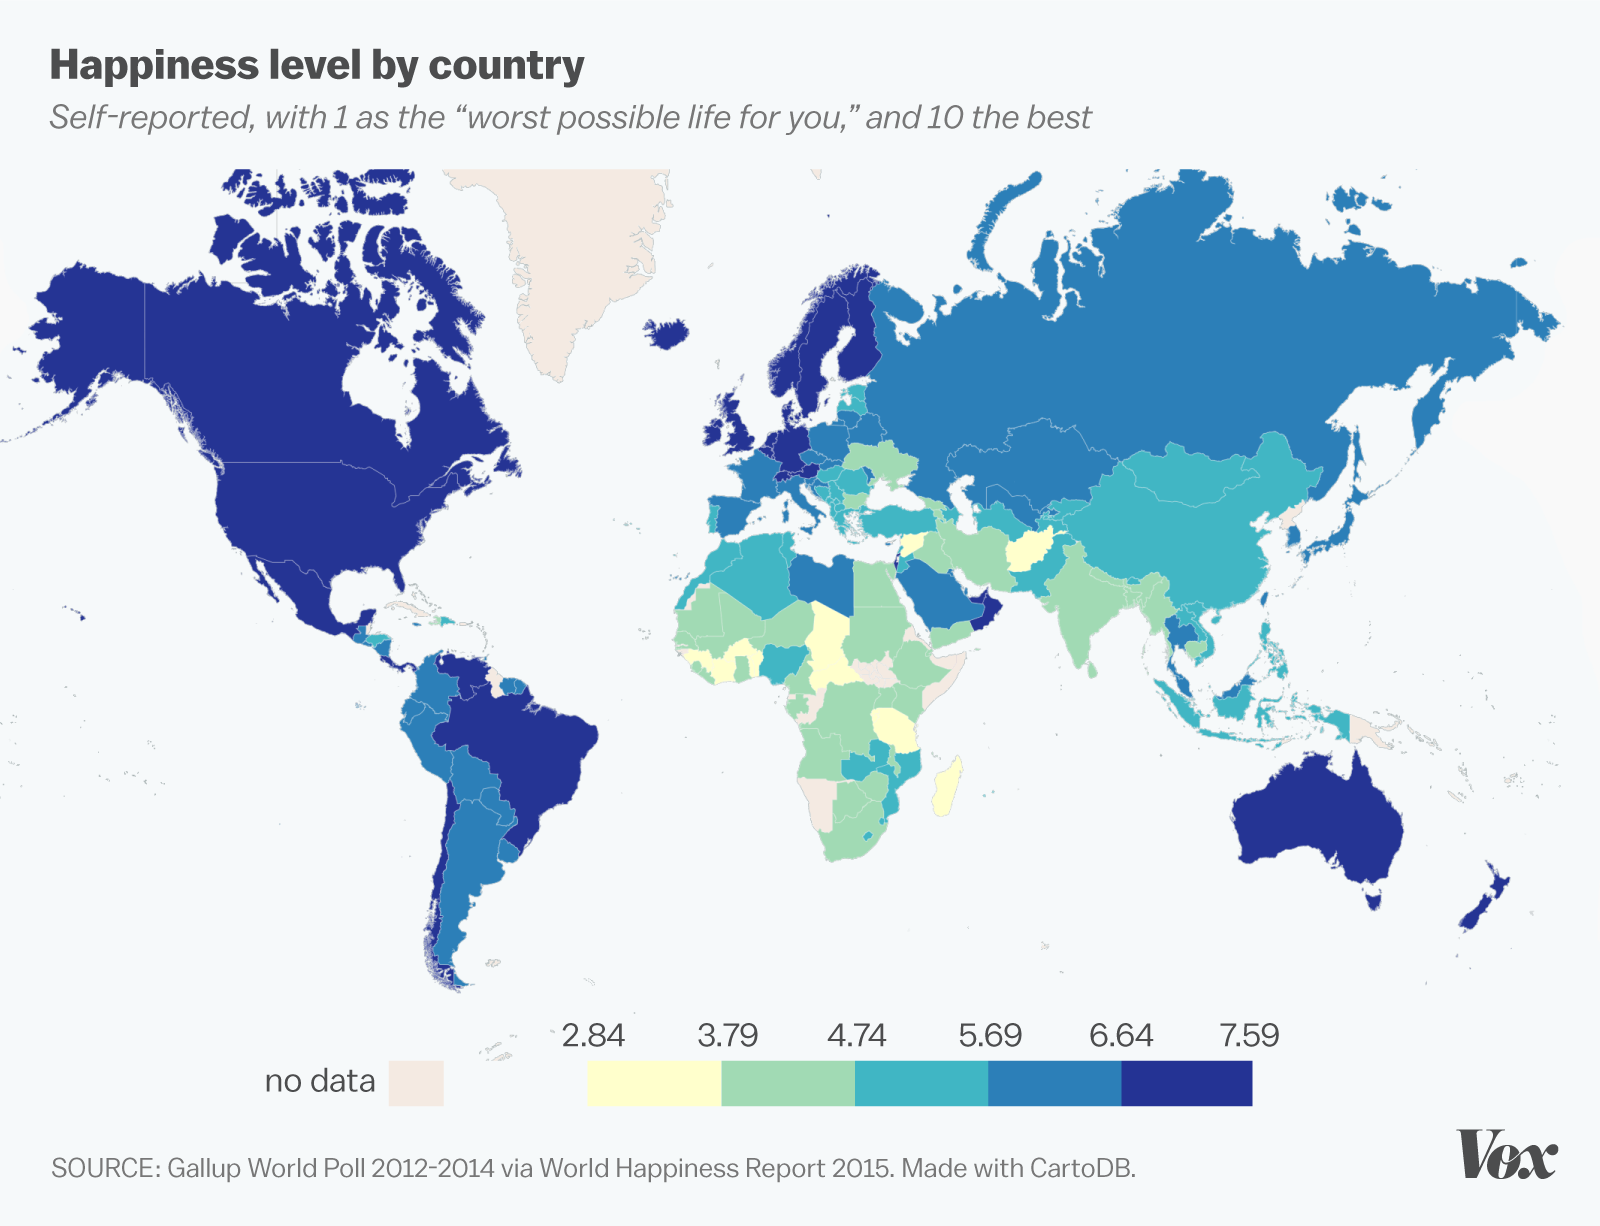 1601B05-world happiness report 2015 world map Vox